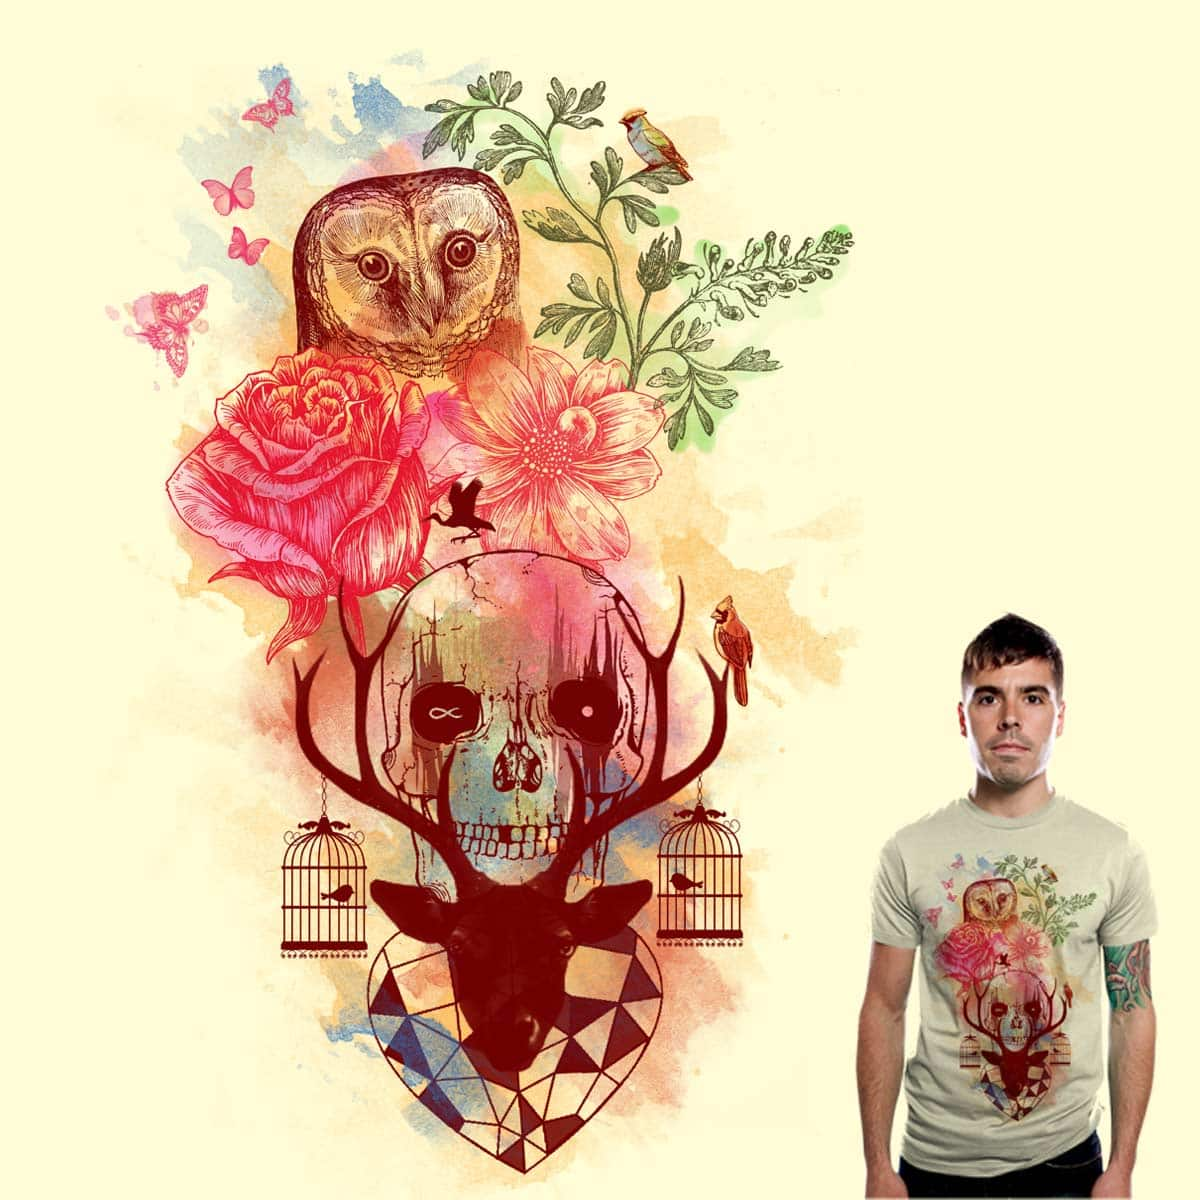 Just Art by bandy on Threadless